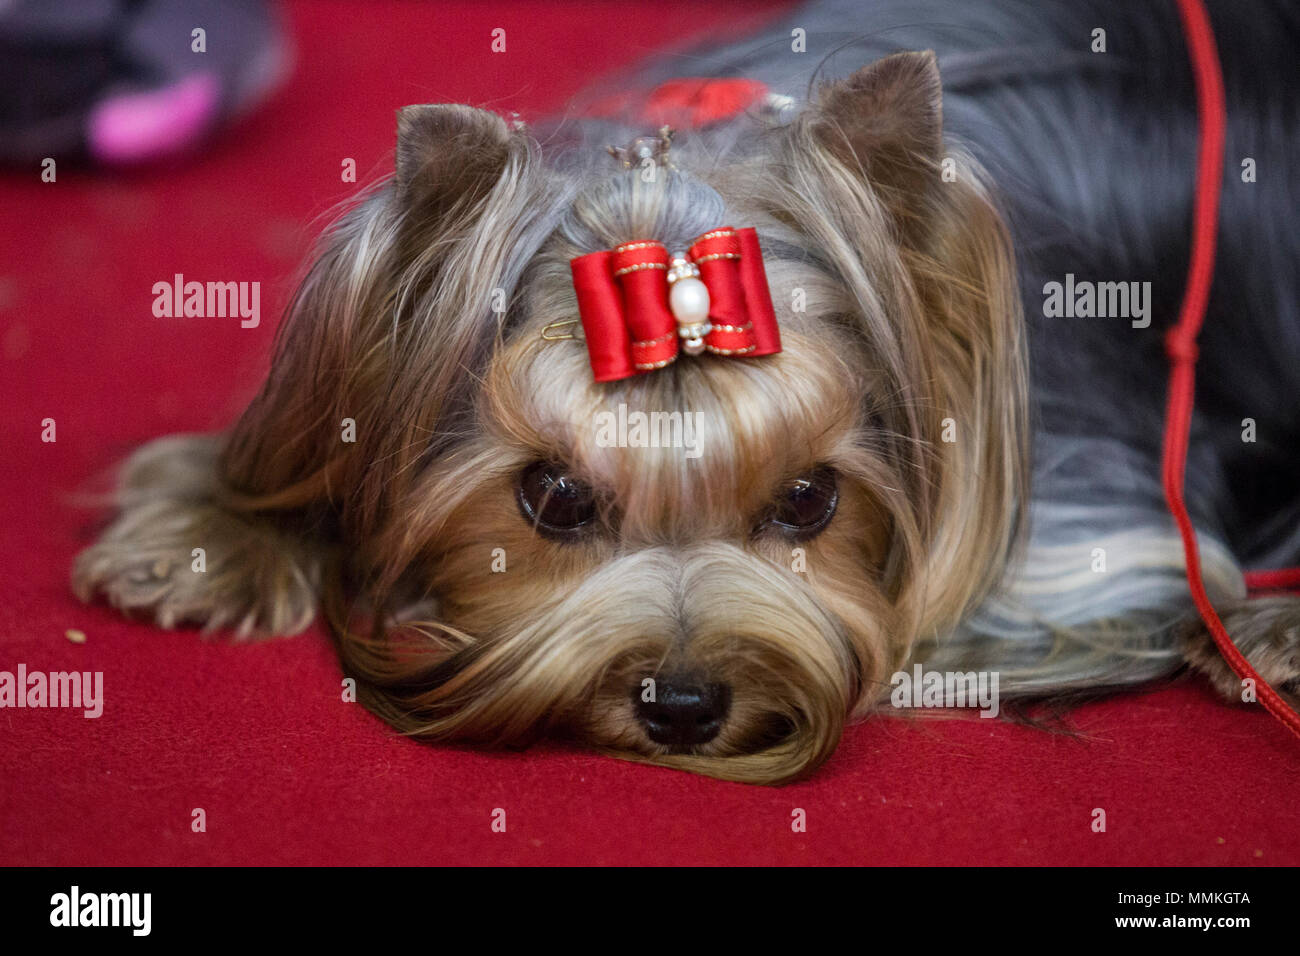 Dortmund, Germany. 12 May 2018. Yorkshire Terrier before a competition. One of the largest dog and cat shows Hund & Katz takes place with more than 8000 dogs from 250 different breeds from 11 to 13 May at Westfalenhallen trade fair in Dortmund. Credit: 51North/Alamy Live News - Stock Image